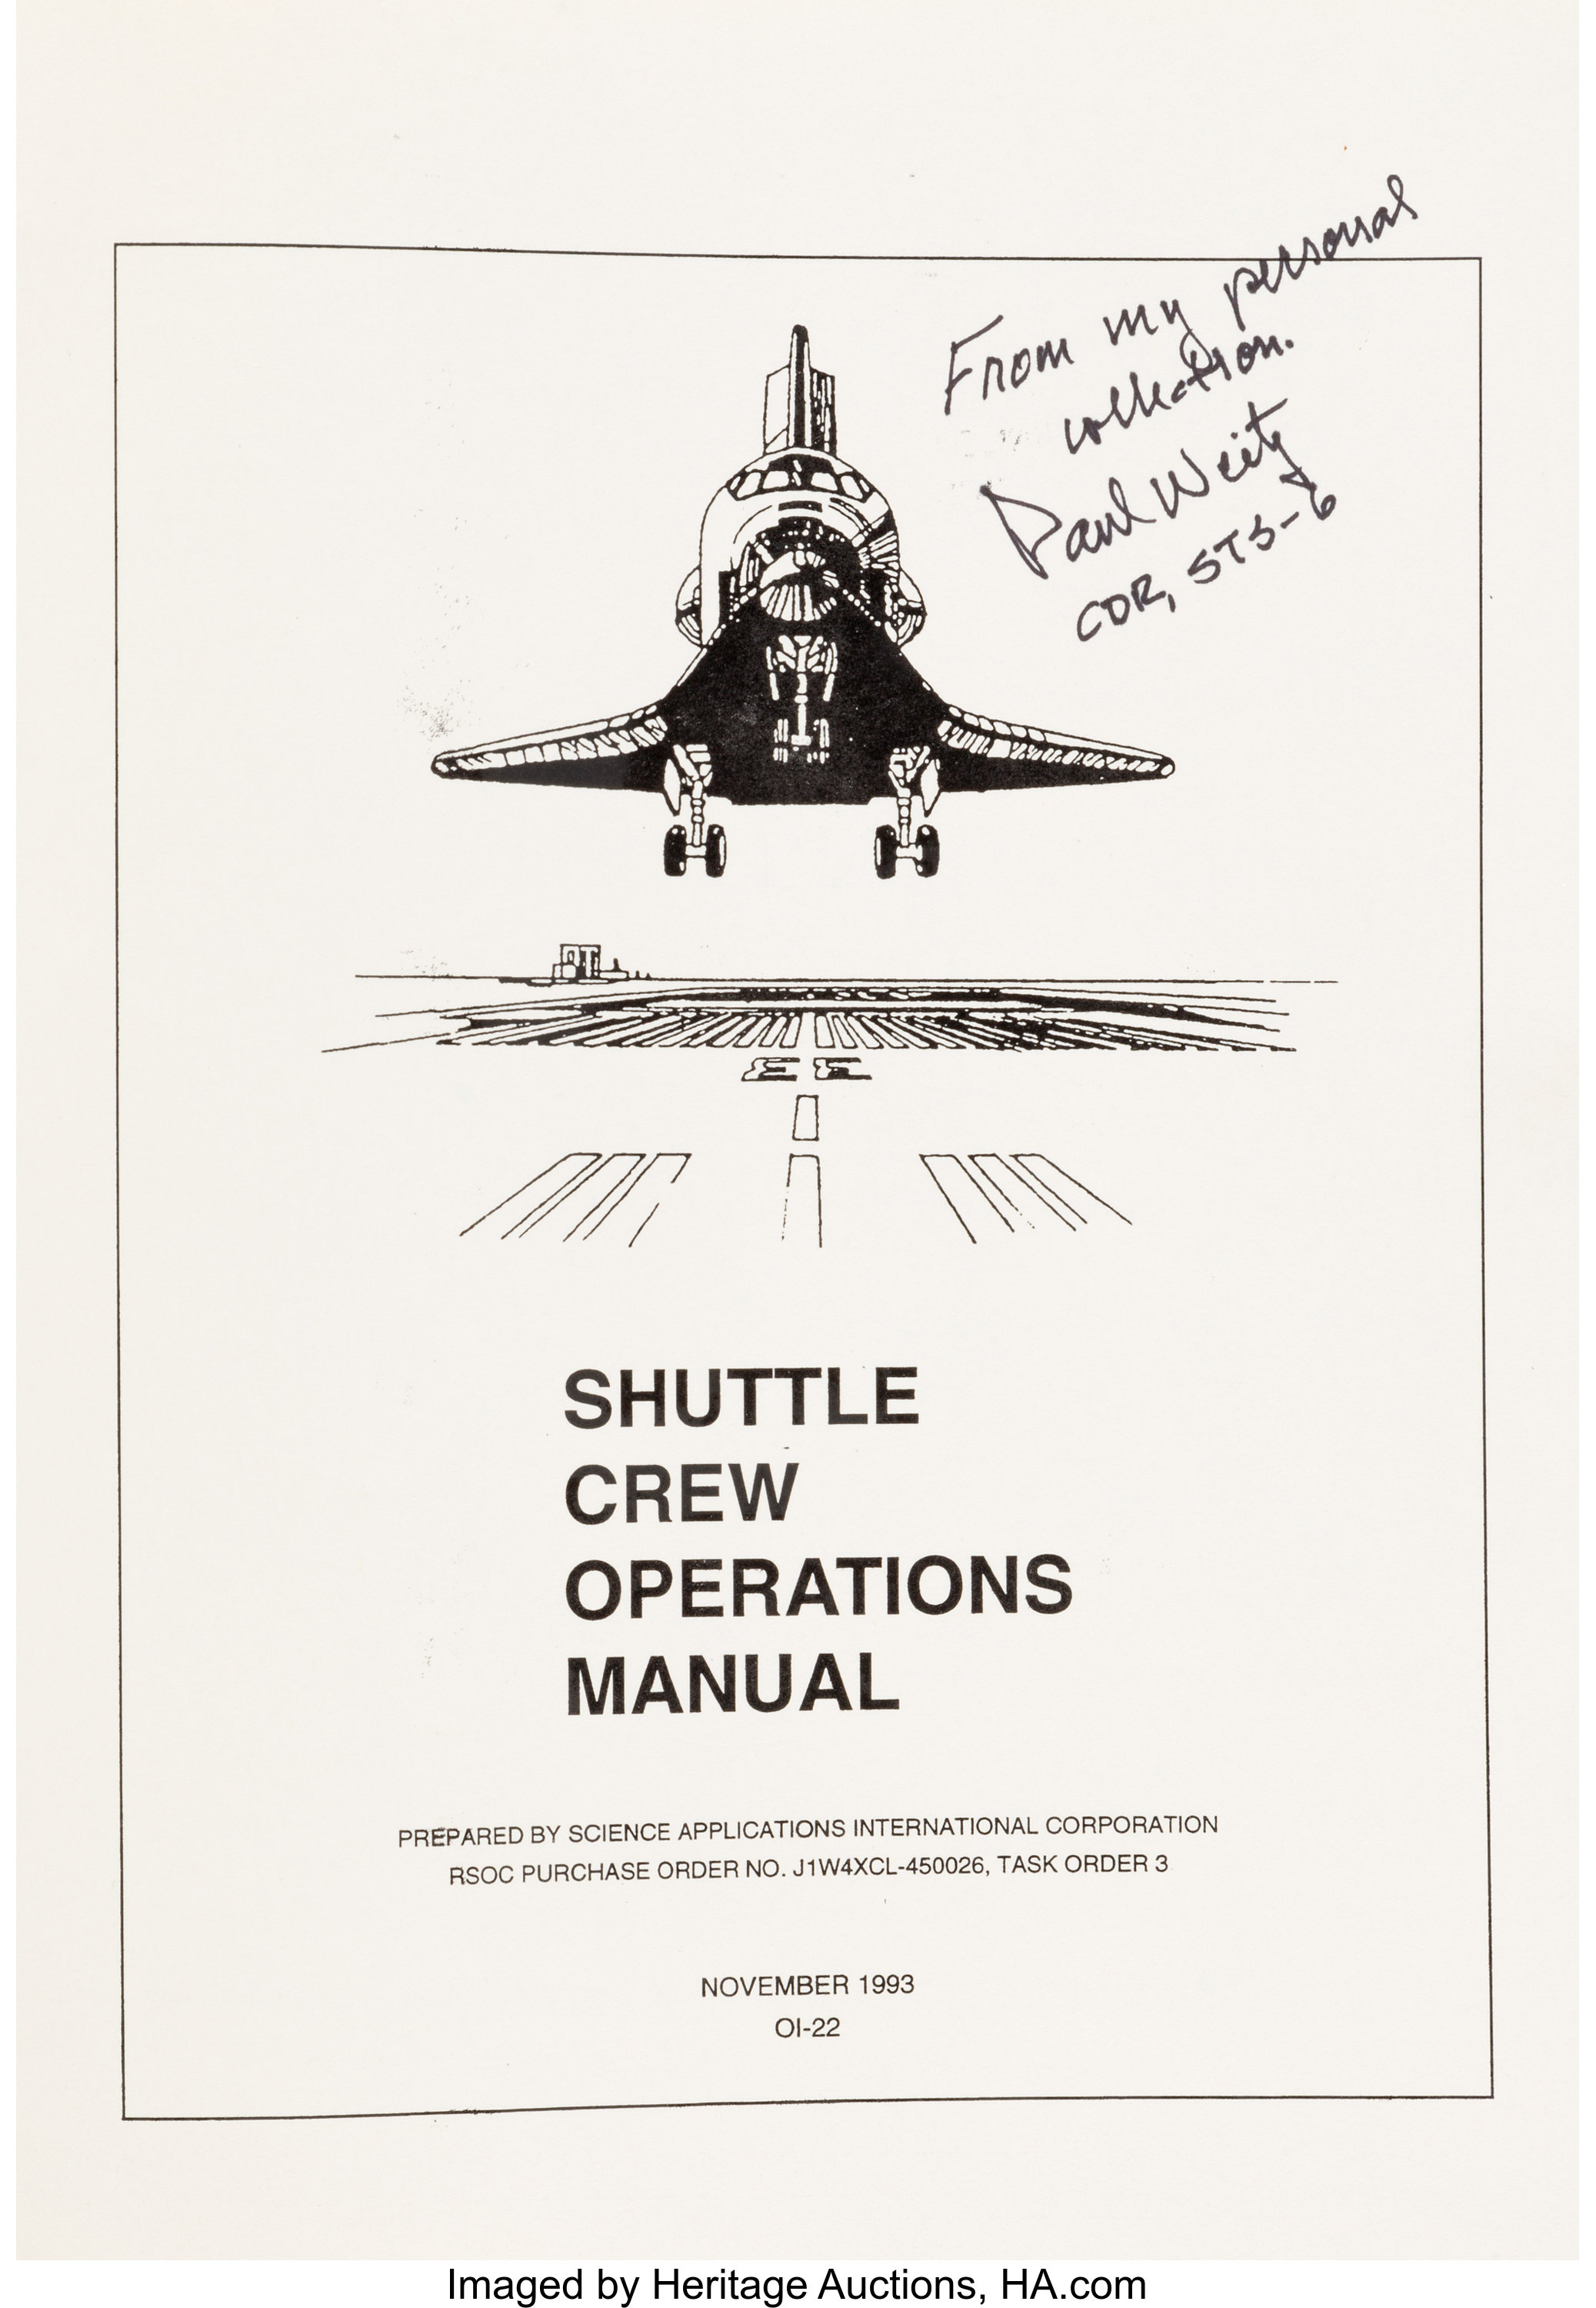 Shuttle Crew Operations Manual Directly From The Personal Lot